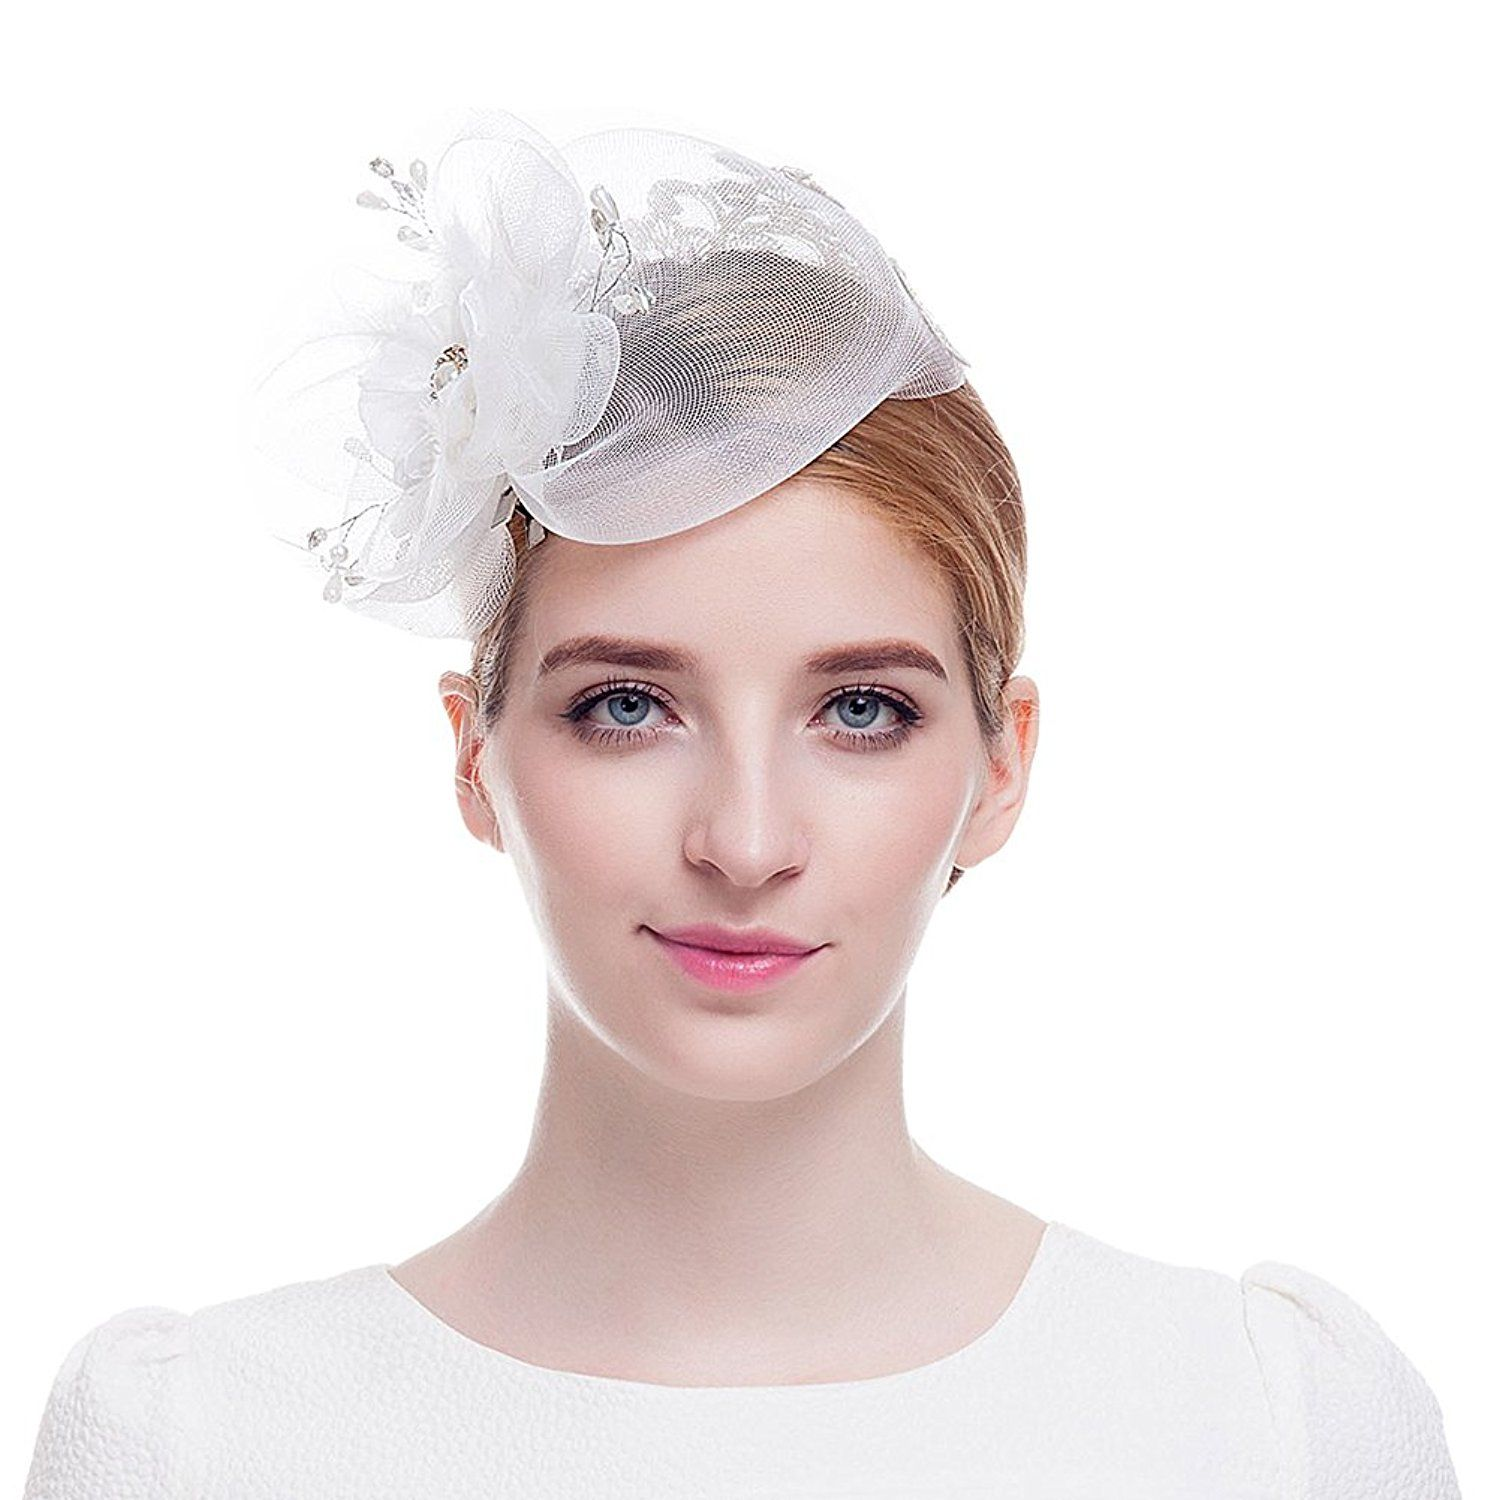 Valdler White Fascinator Hat Wedding Hair Piece Cocktail Kentucky Derby Hat  -- This is an Amazon Affiliate link. Continue to the product at the image  link. 768566cd2e5